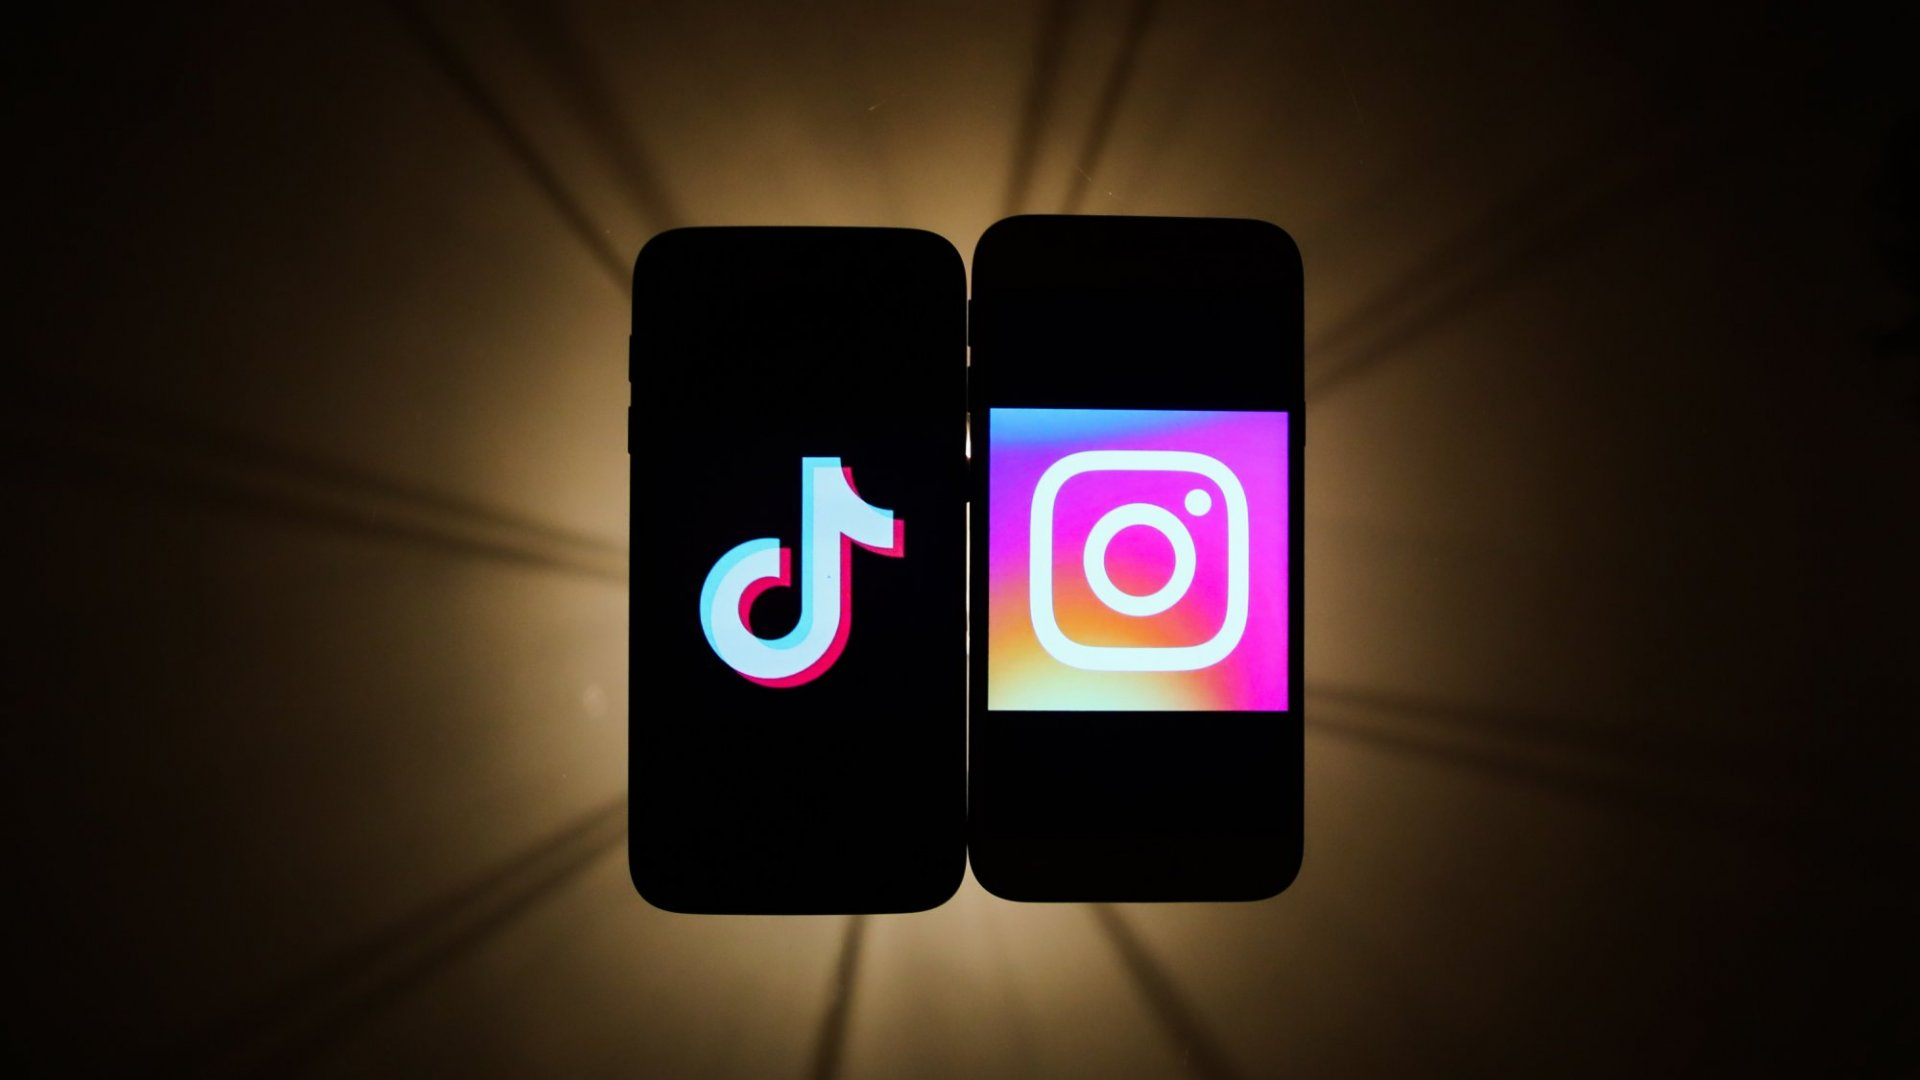 Instagram's Reels is DOA. Here's Why TikTok Is Superior - Haulix Daily